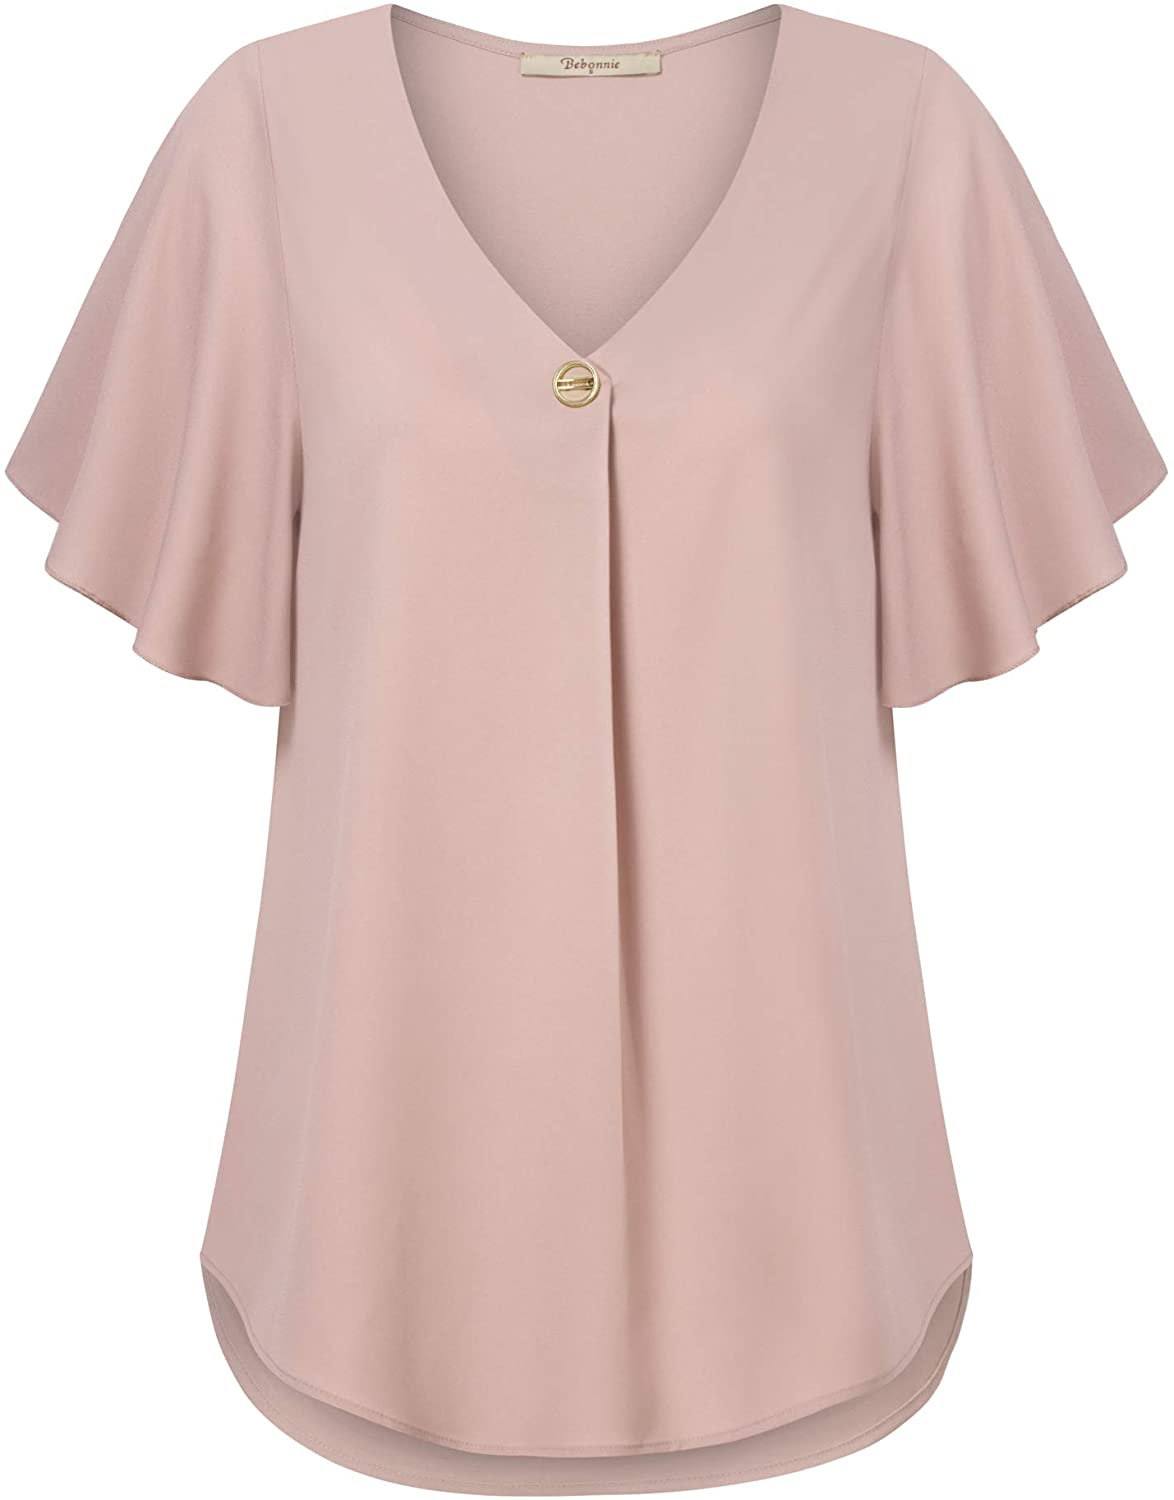 Bebonnie Womens Casual Summer Ruffle Sleeve V Neck Loose Fit Chiffon Blouse Tops